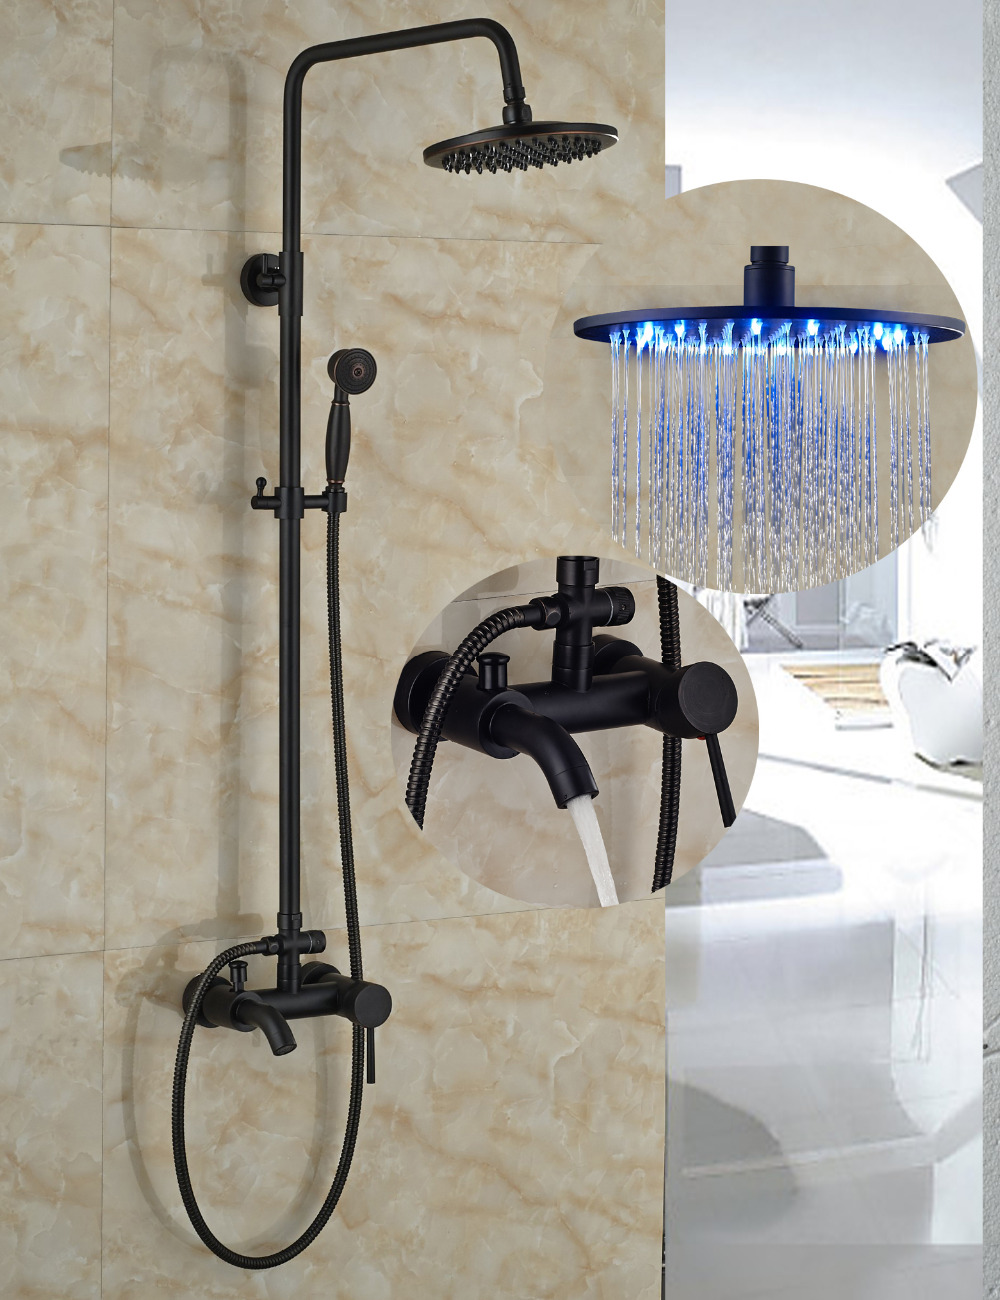 Wholesale And Retail Wall Mounted Oil Rubbed Bronze 8 LED Round Rain Shower Head Tub Spout Valve Mixer Tap Hand Shower